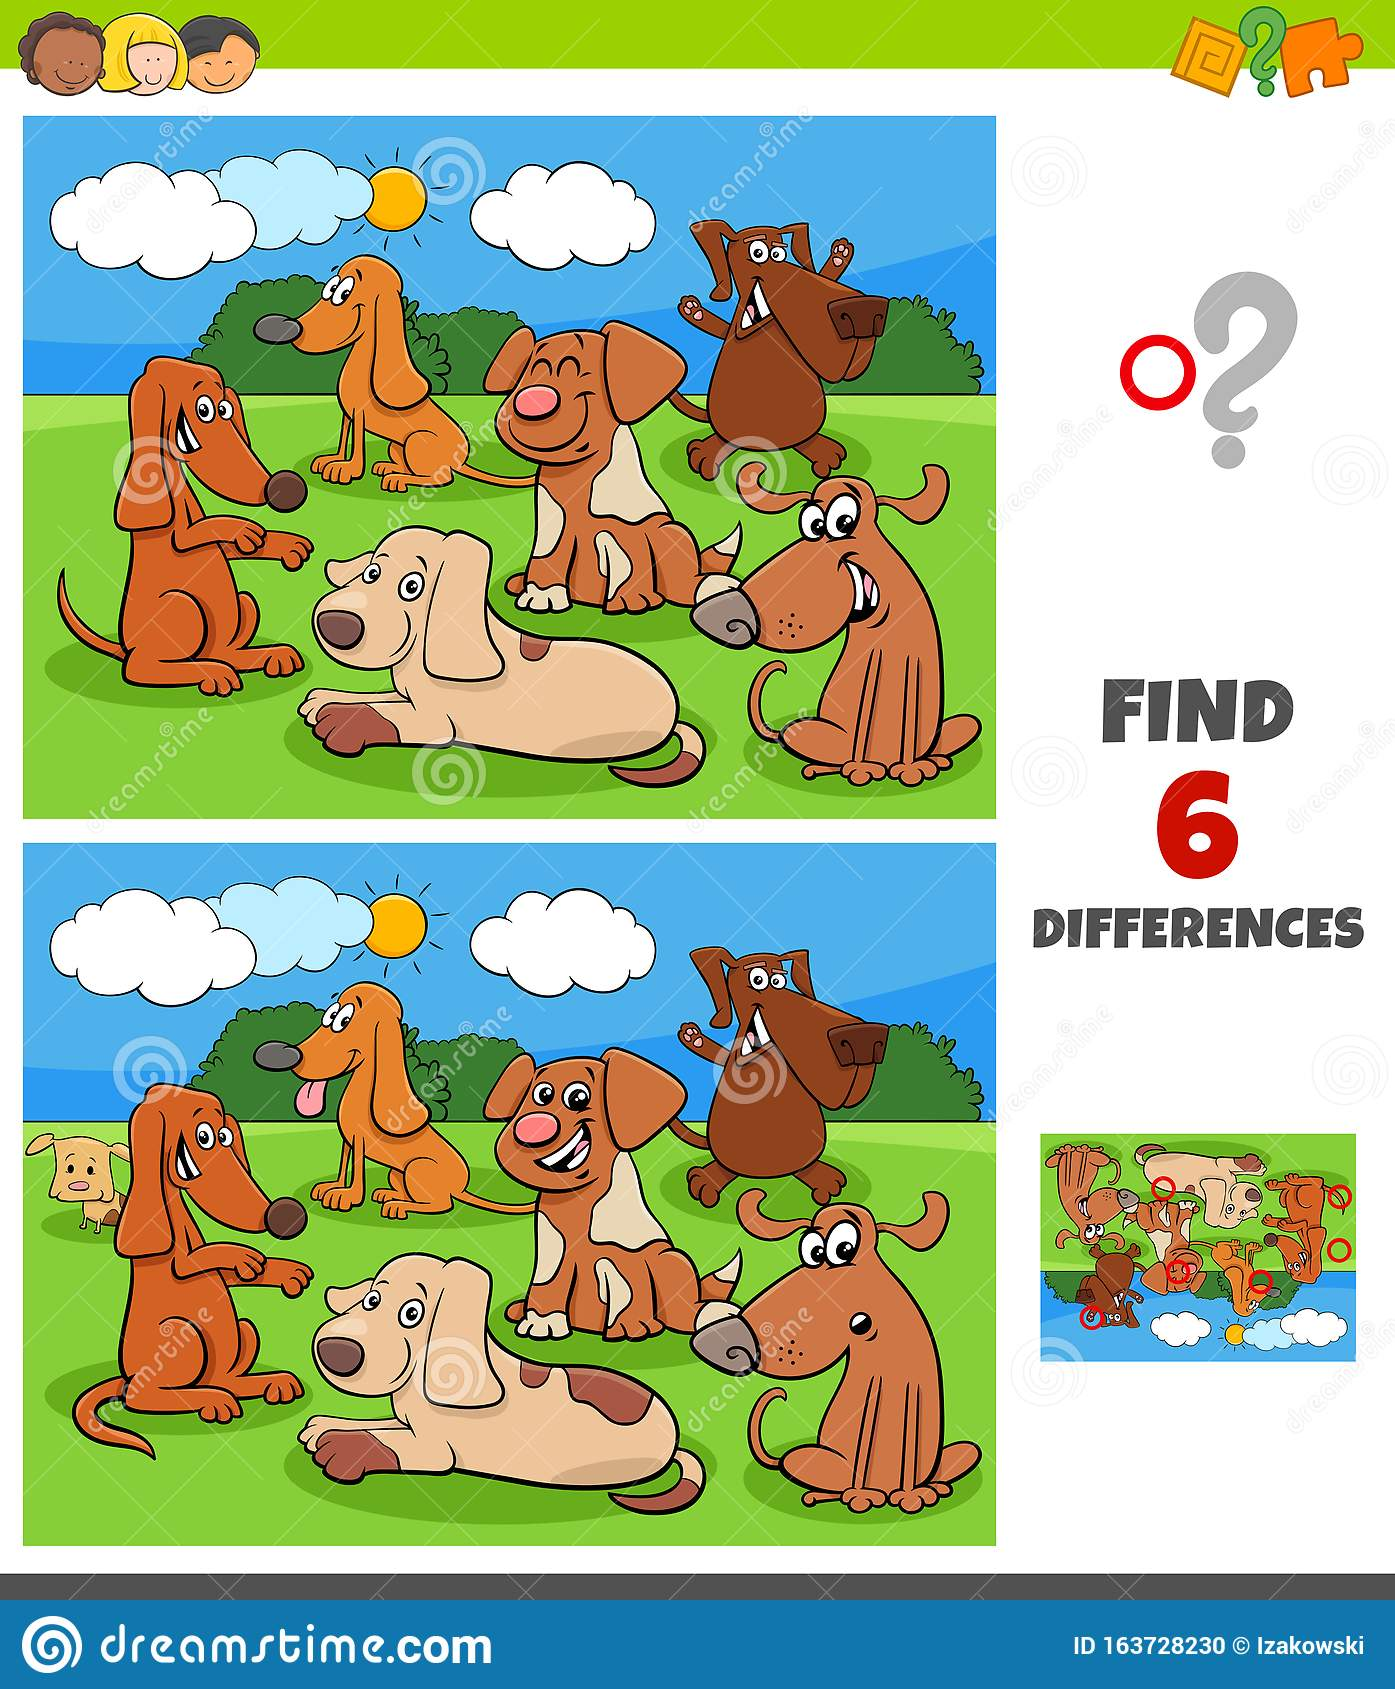 Differences Game With Dogs And Puppies Characters Stock